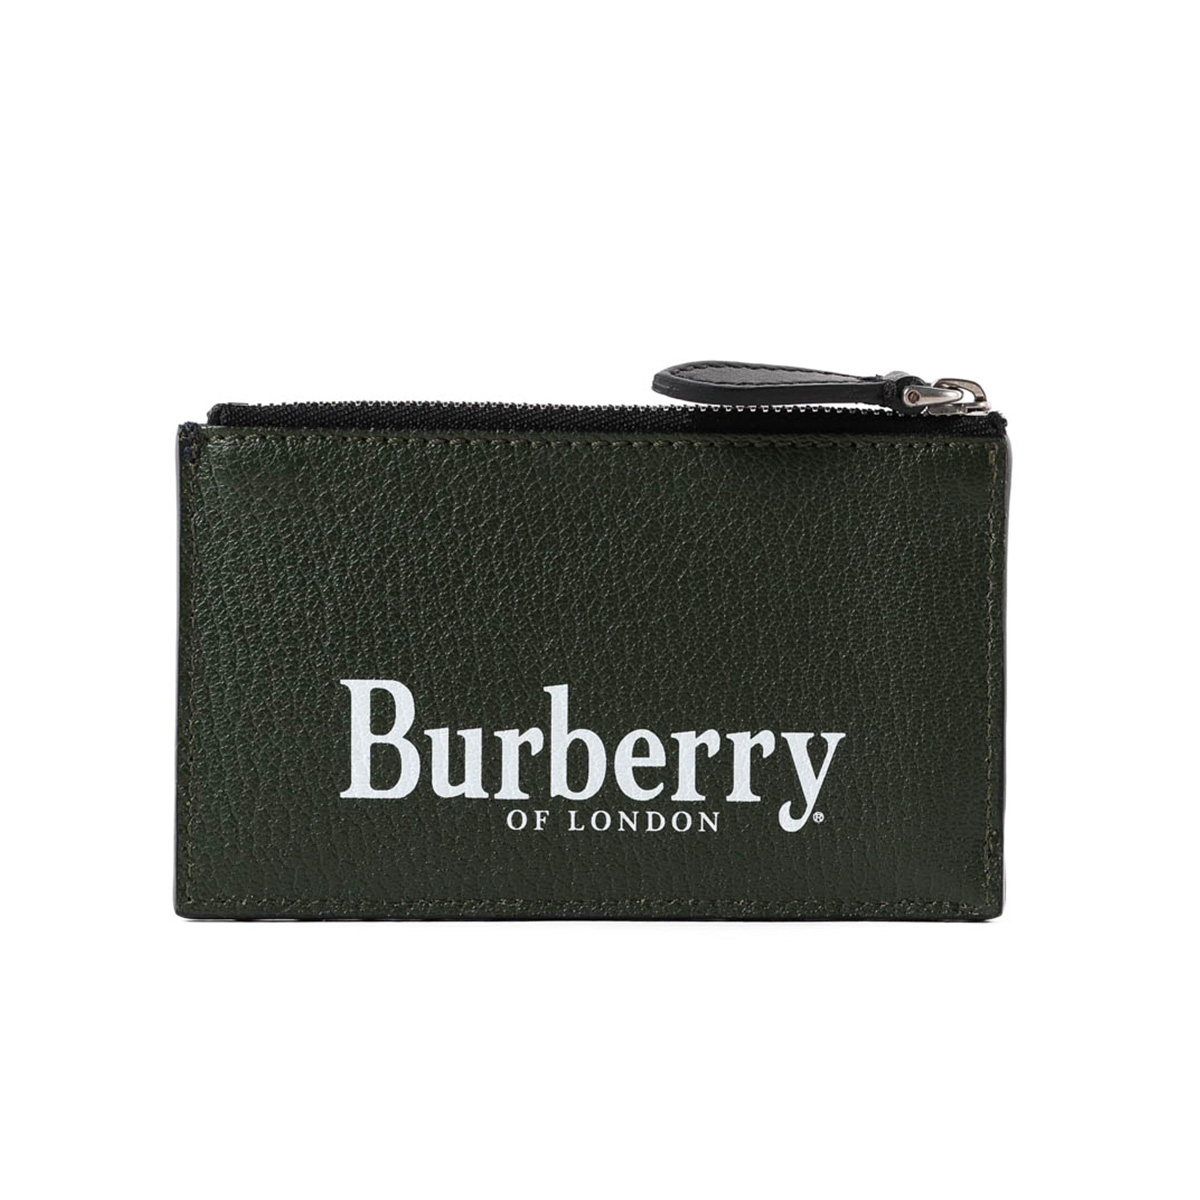 card-holder-burberry-small-zipped-pouch-crest-print-blue-green